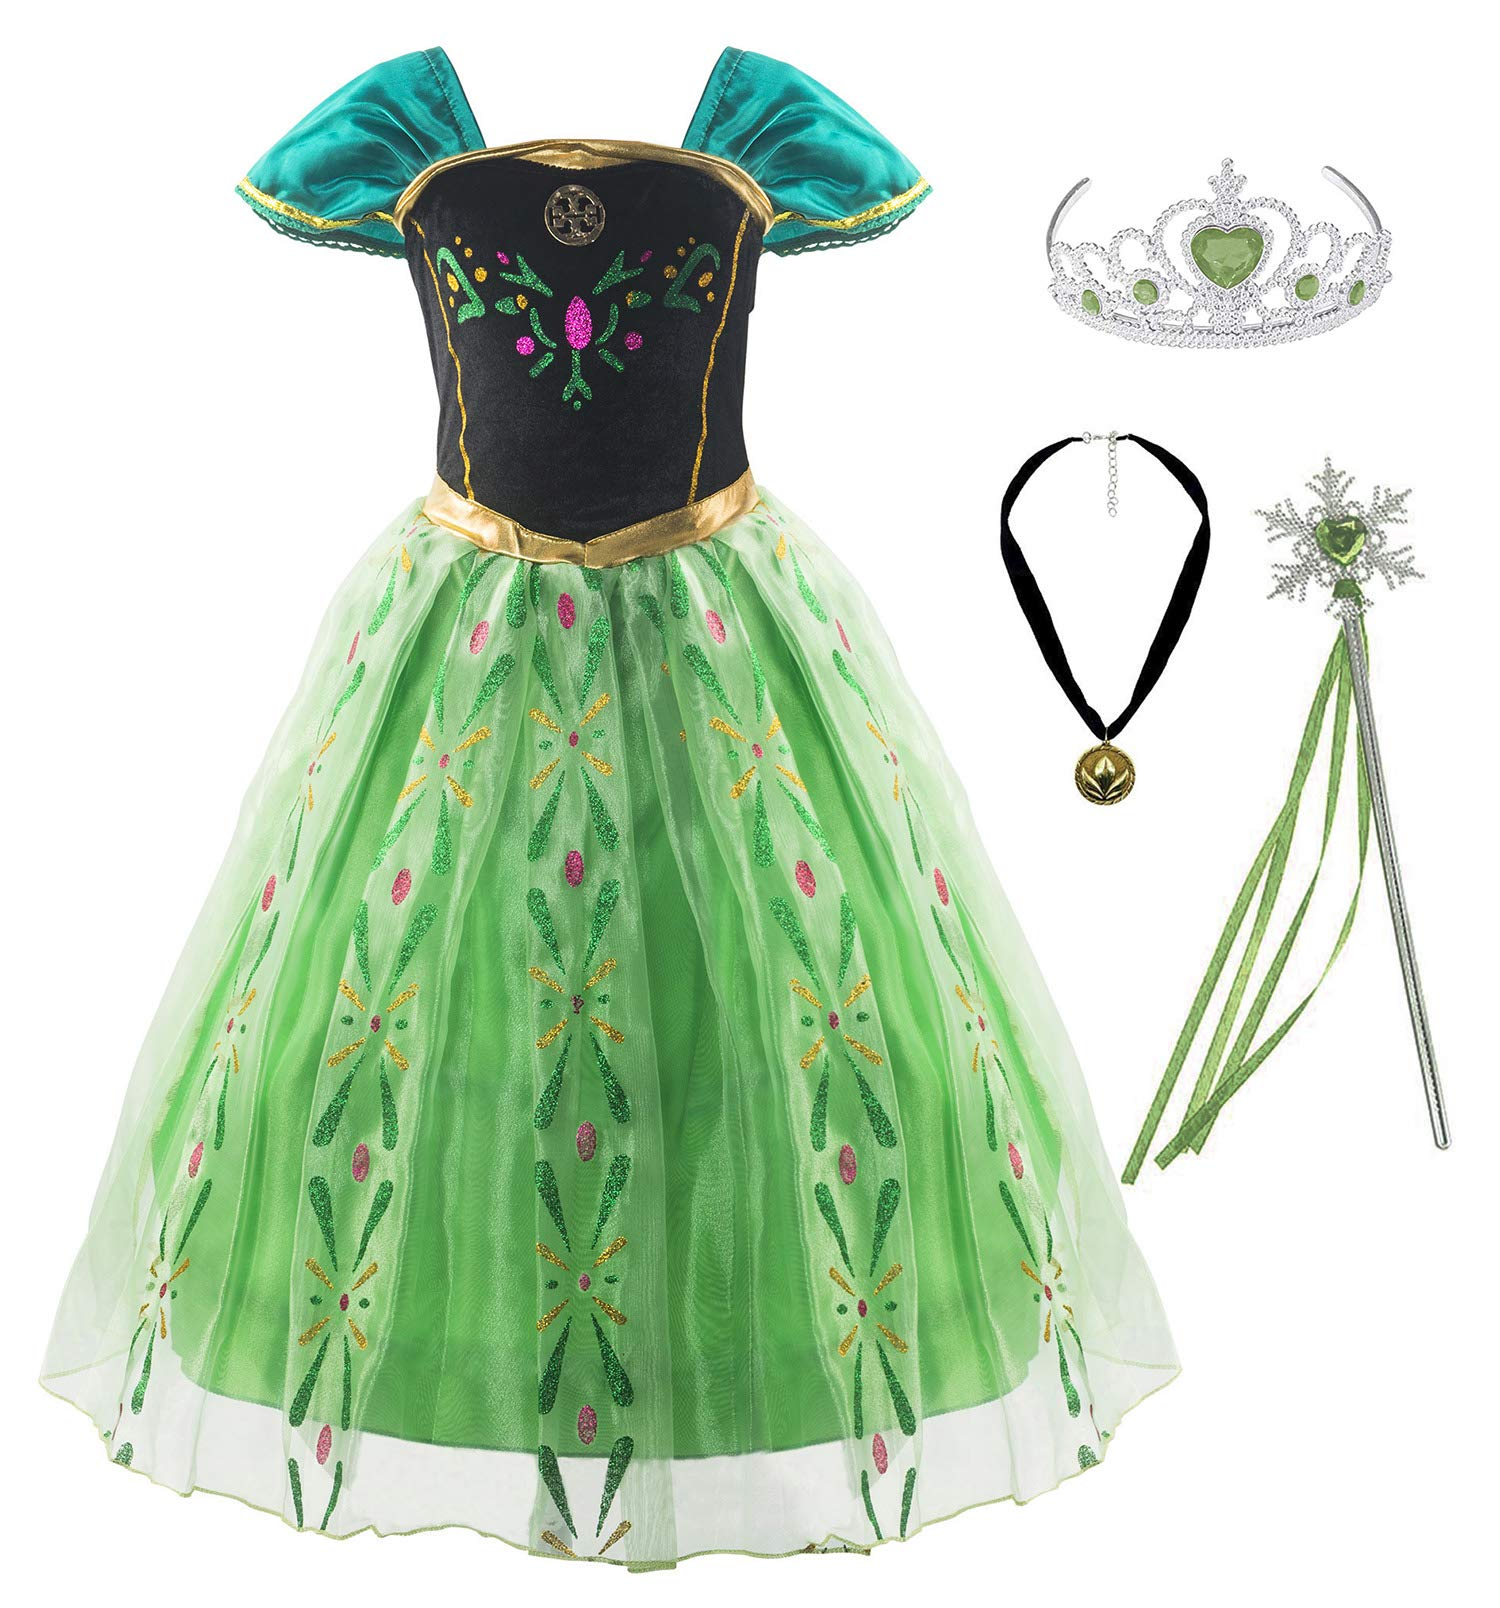 Padete Little Girls Anna Princess Dress Elsa Snow Party Queen Halloween Costume (3 Years, Green with Accessories)